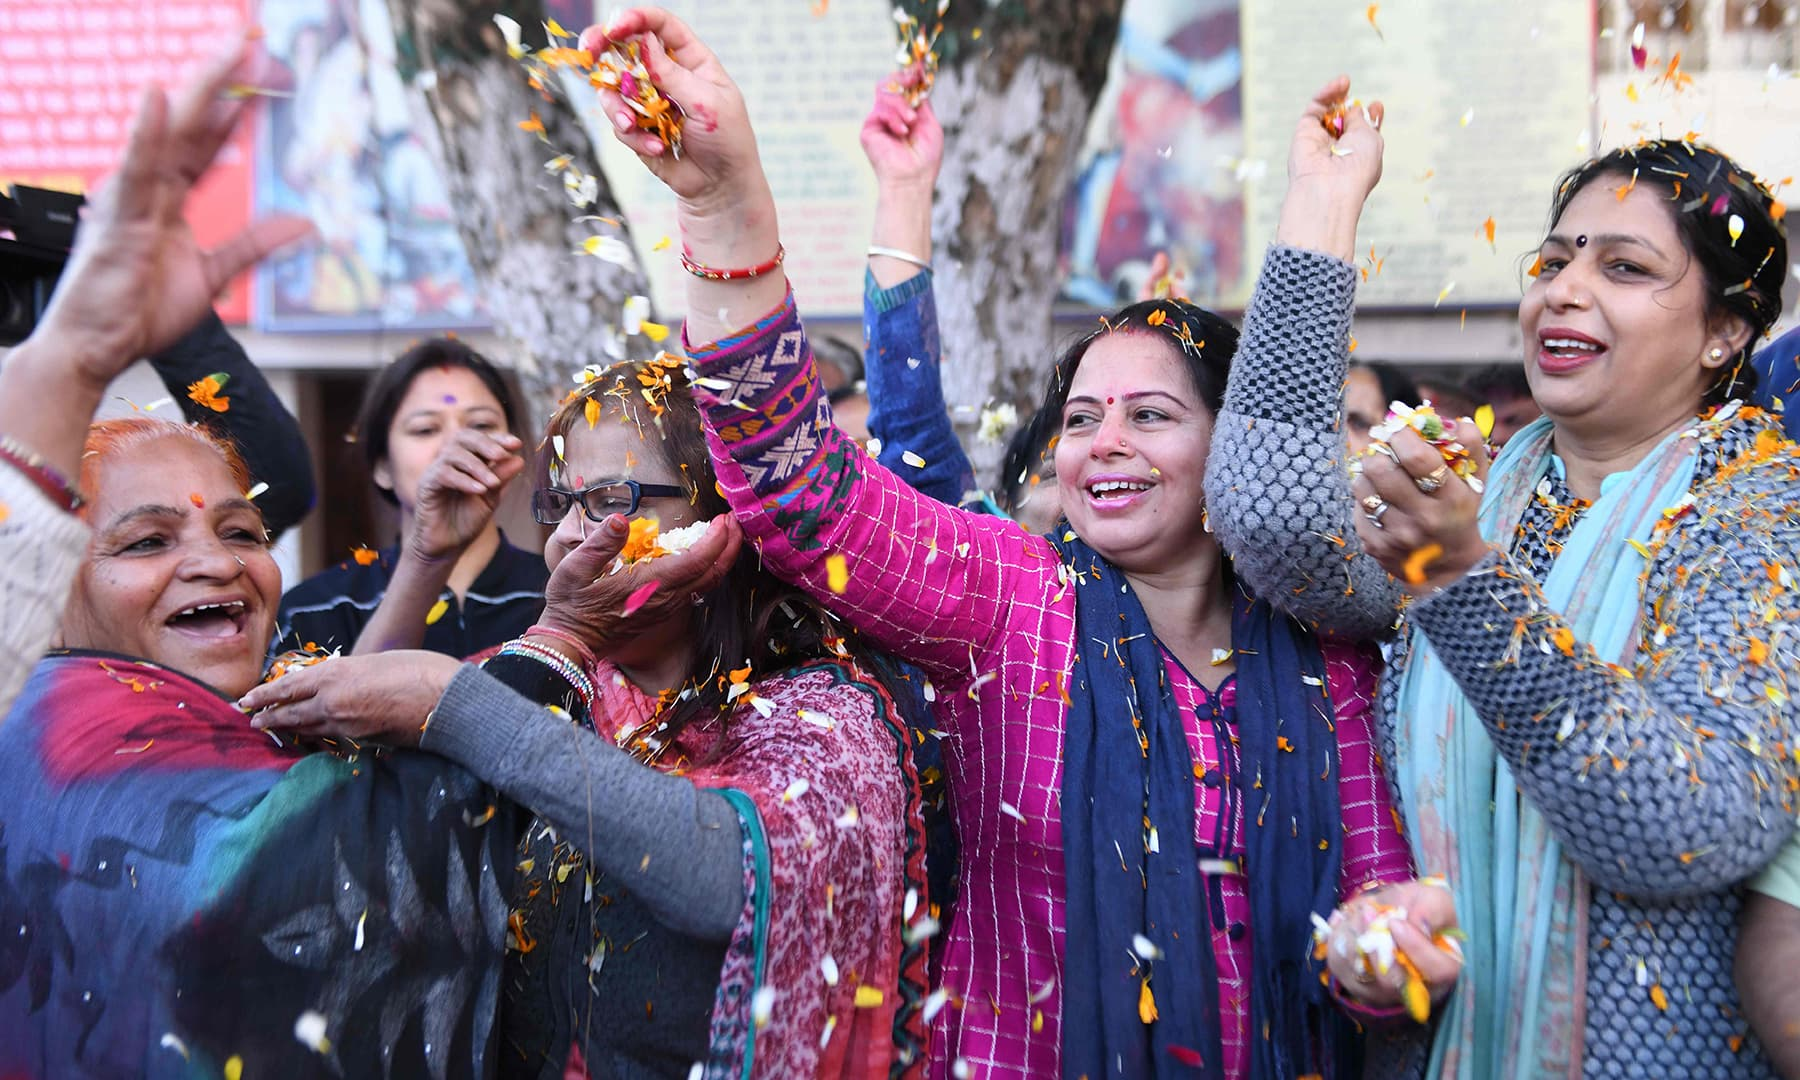 Hindu devotees celebrate Holi with flower petals at a temple in Amritsar. — AFP